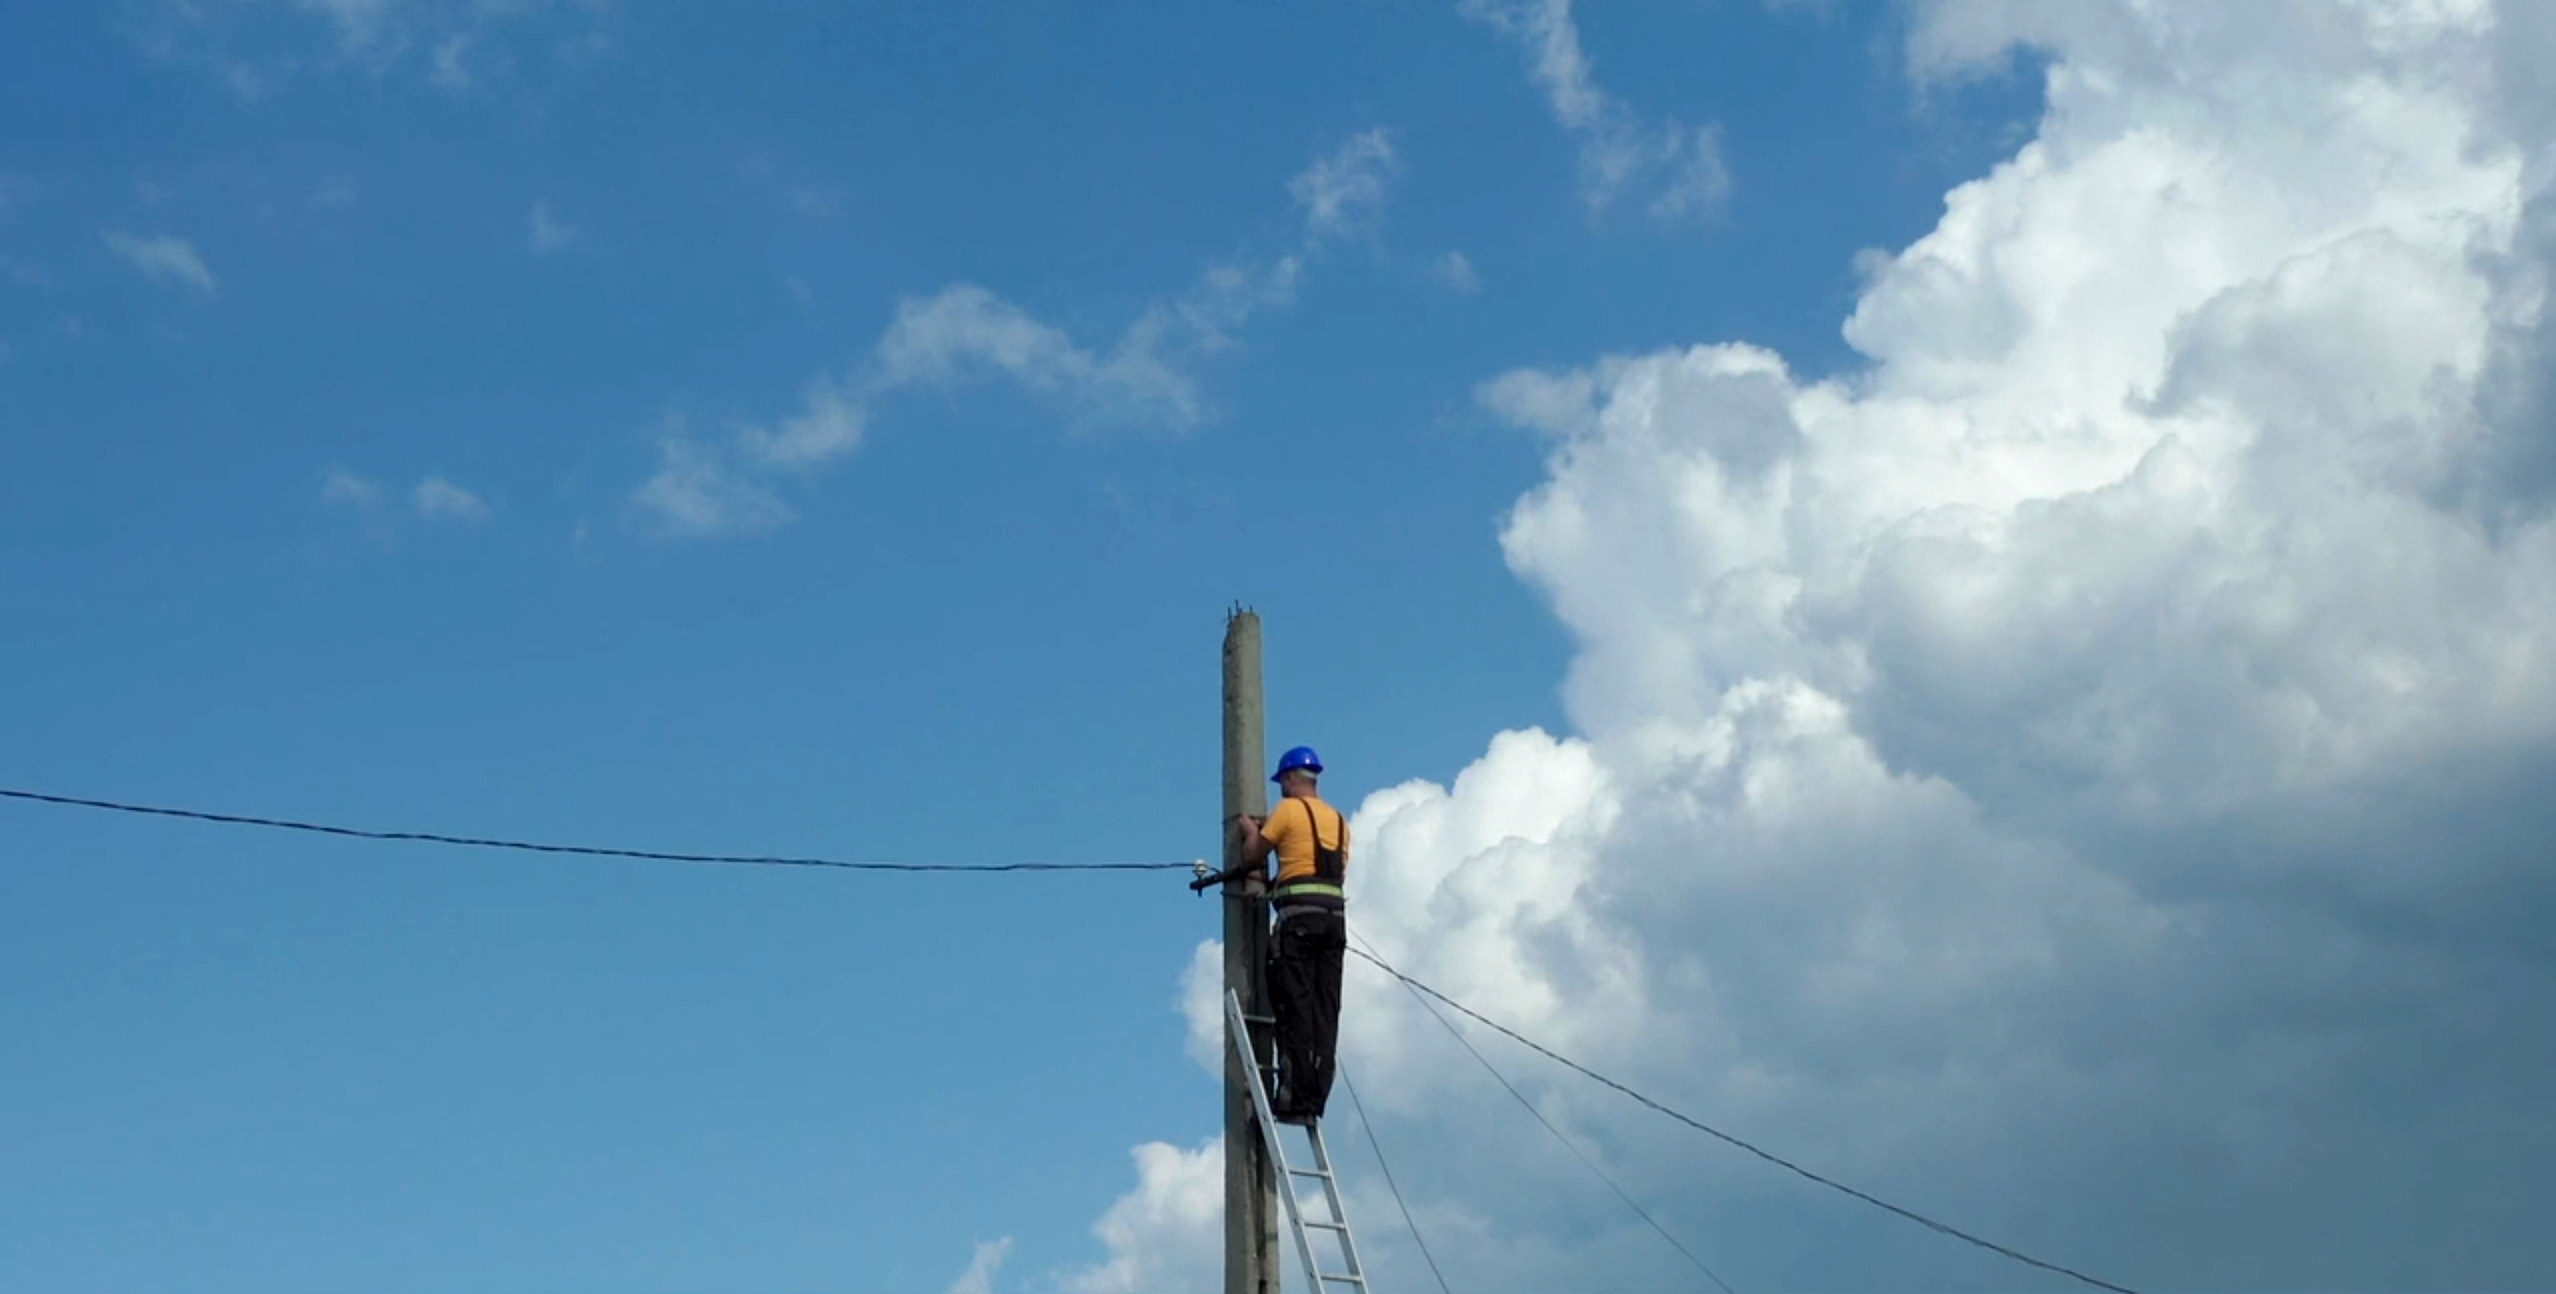 A still from Please Hold The Line. A man fixing a telephone wire.